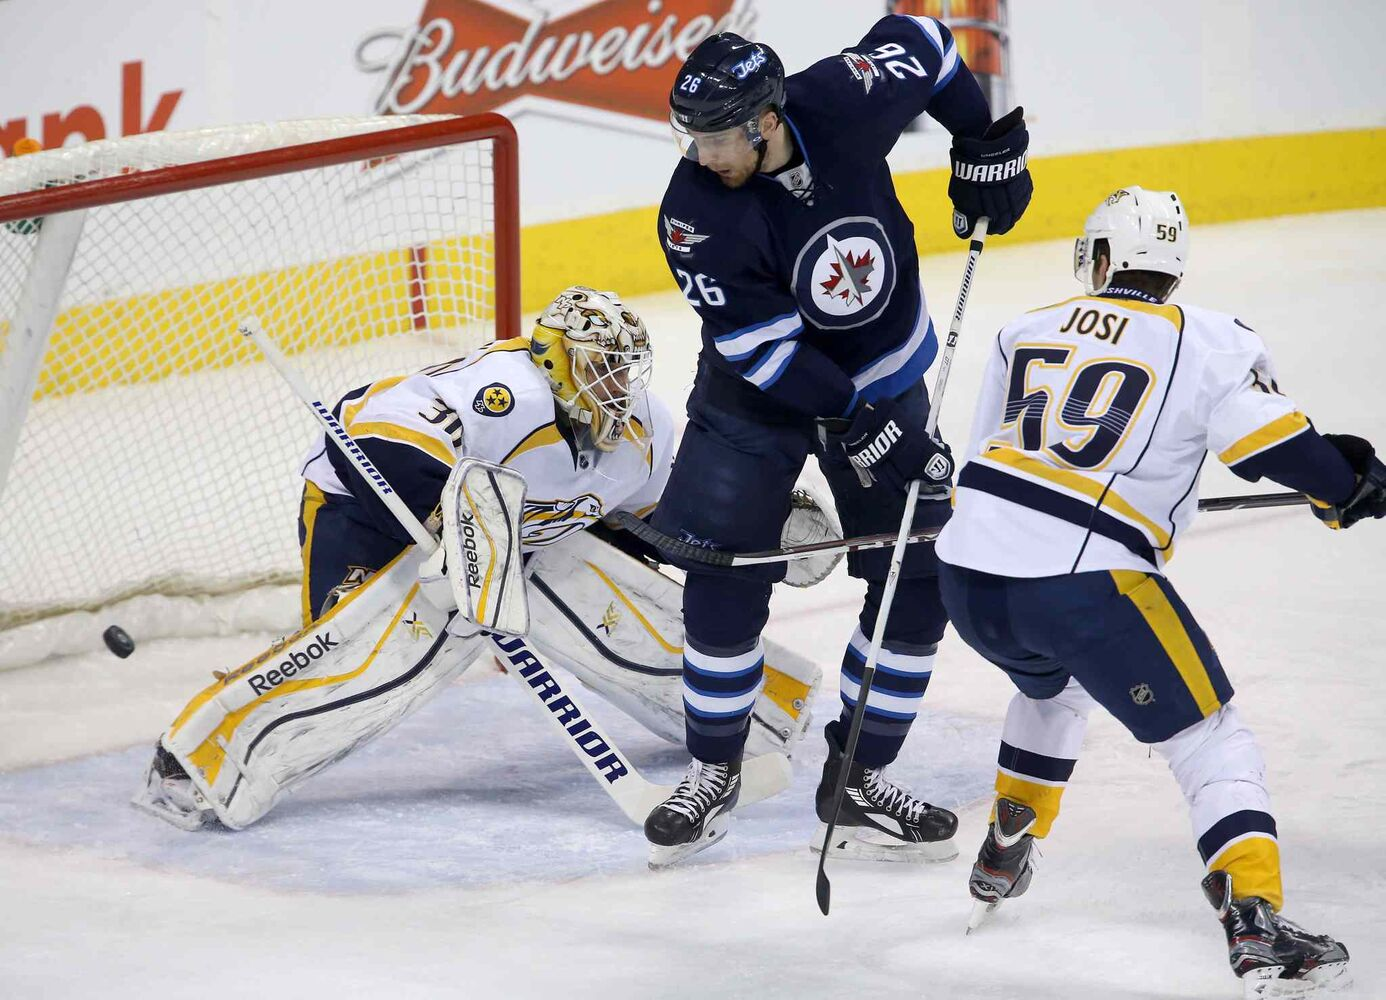 A shot by Winnipeg Jets' Chris Thorburn (22), not shown, beats Nashville Predators' goaltender Carter Hutton (30) as Jets' Blake Wheeler (26) and Predators' Roman Josi (59) battle in front of the net during first period at Winnipeg's MTS Centre Tuesday. (Trevor Hagan / The Canadian Press)